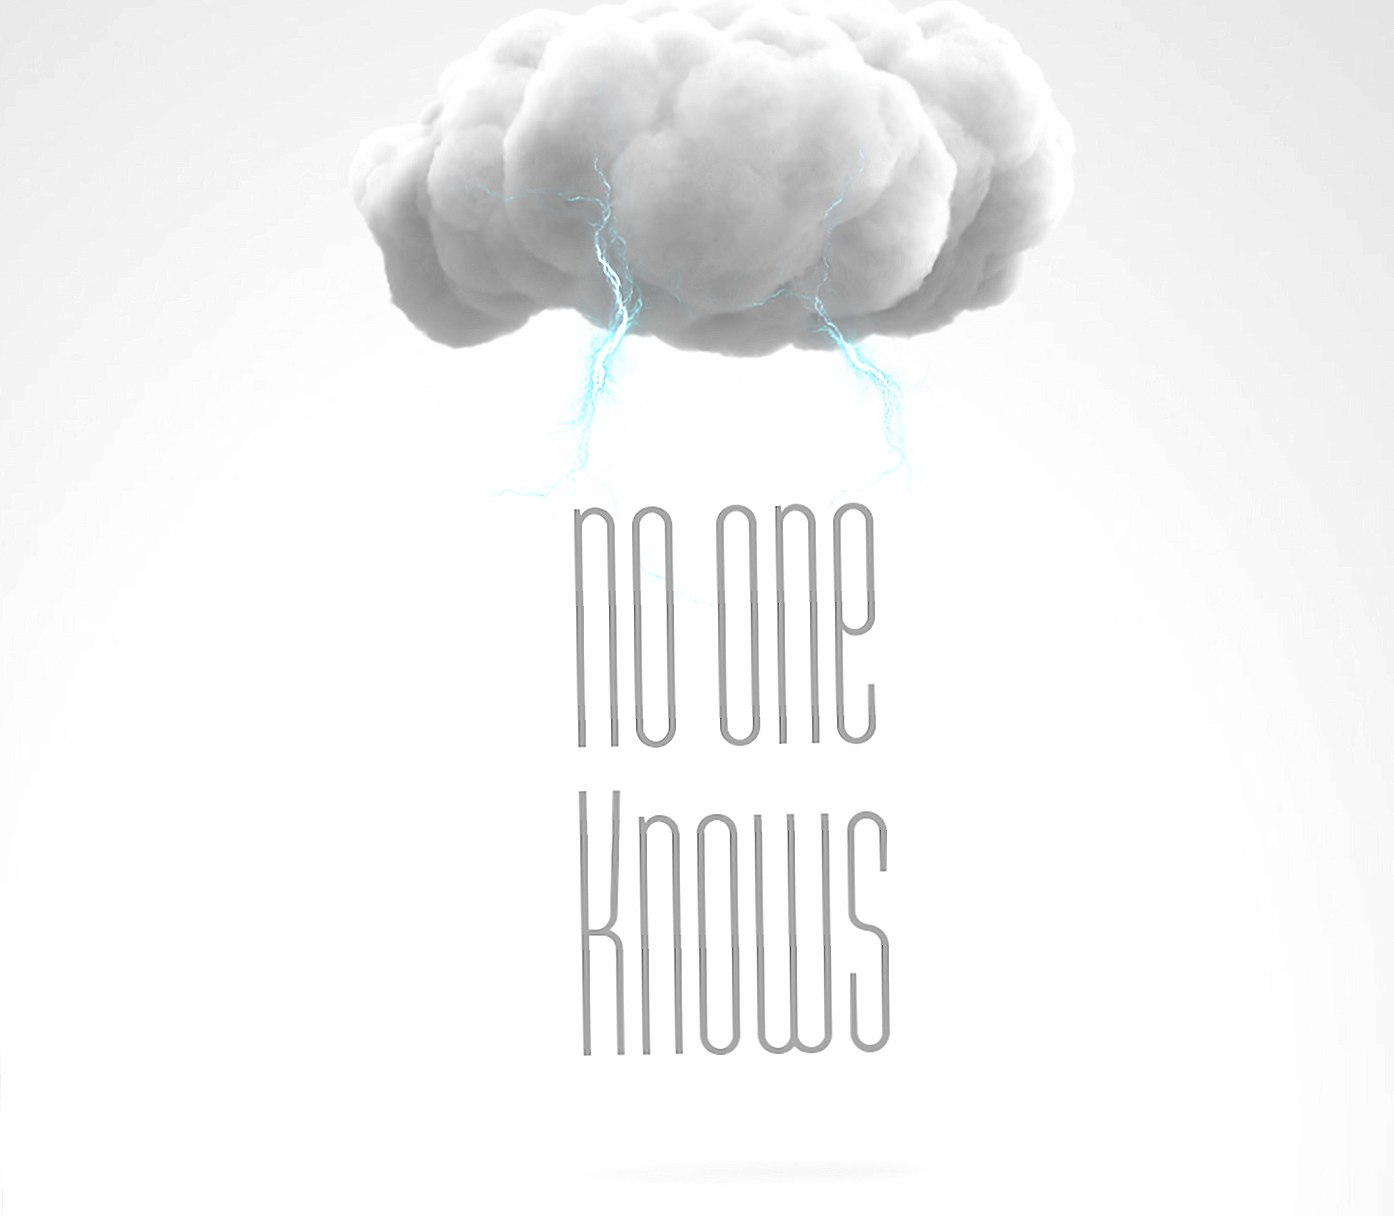 No one knows wallpapers HD quality